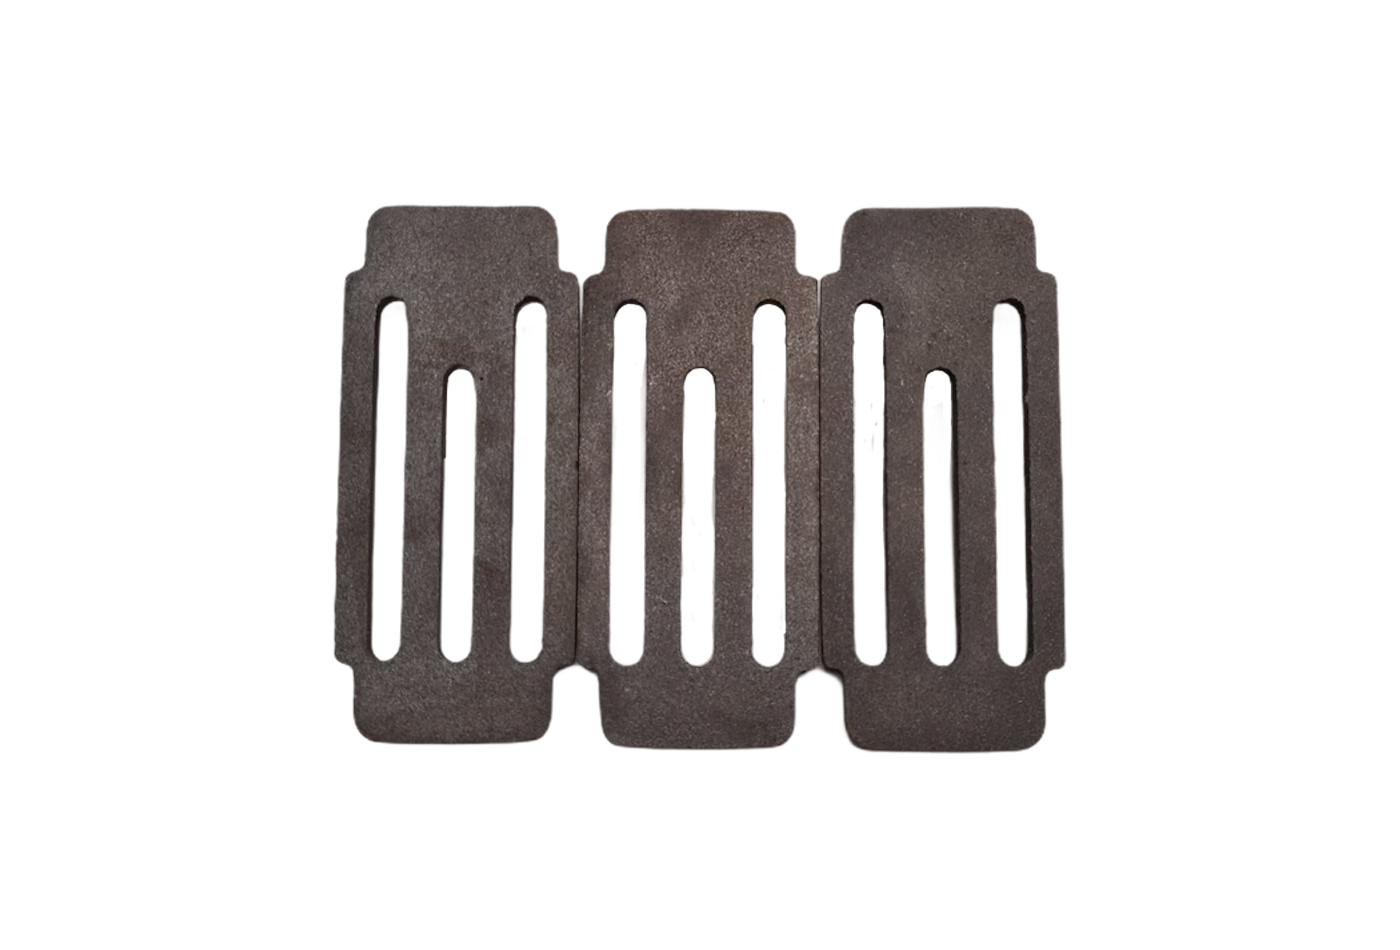 Charnwood C6 Grate Plate Set